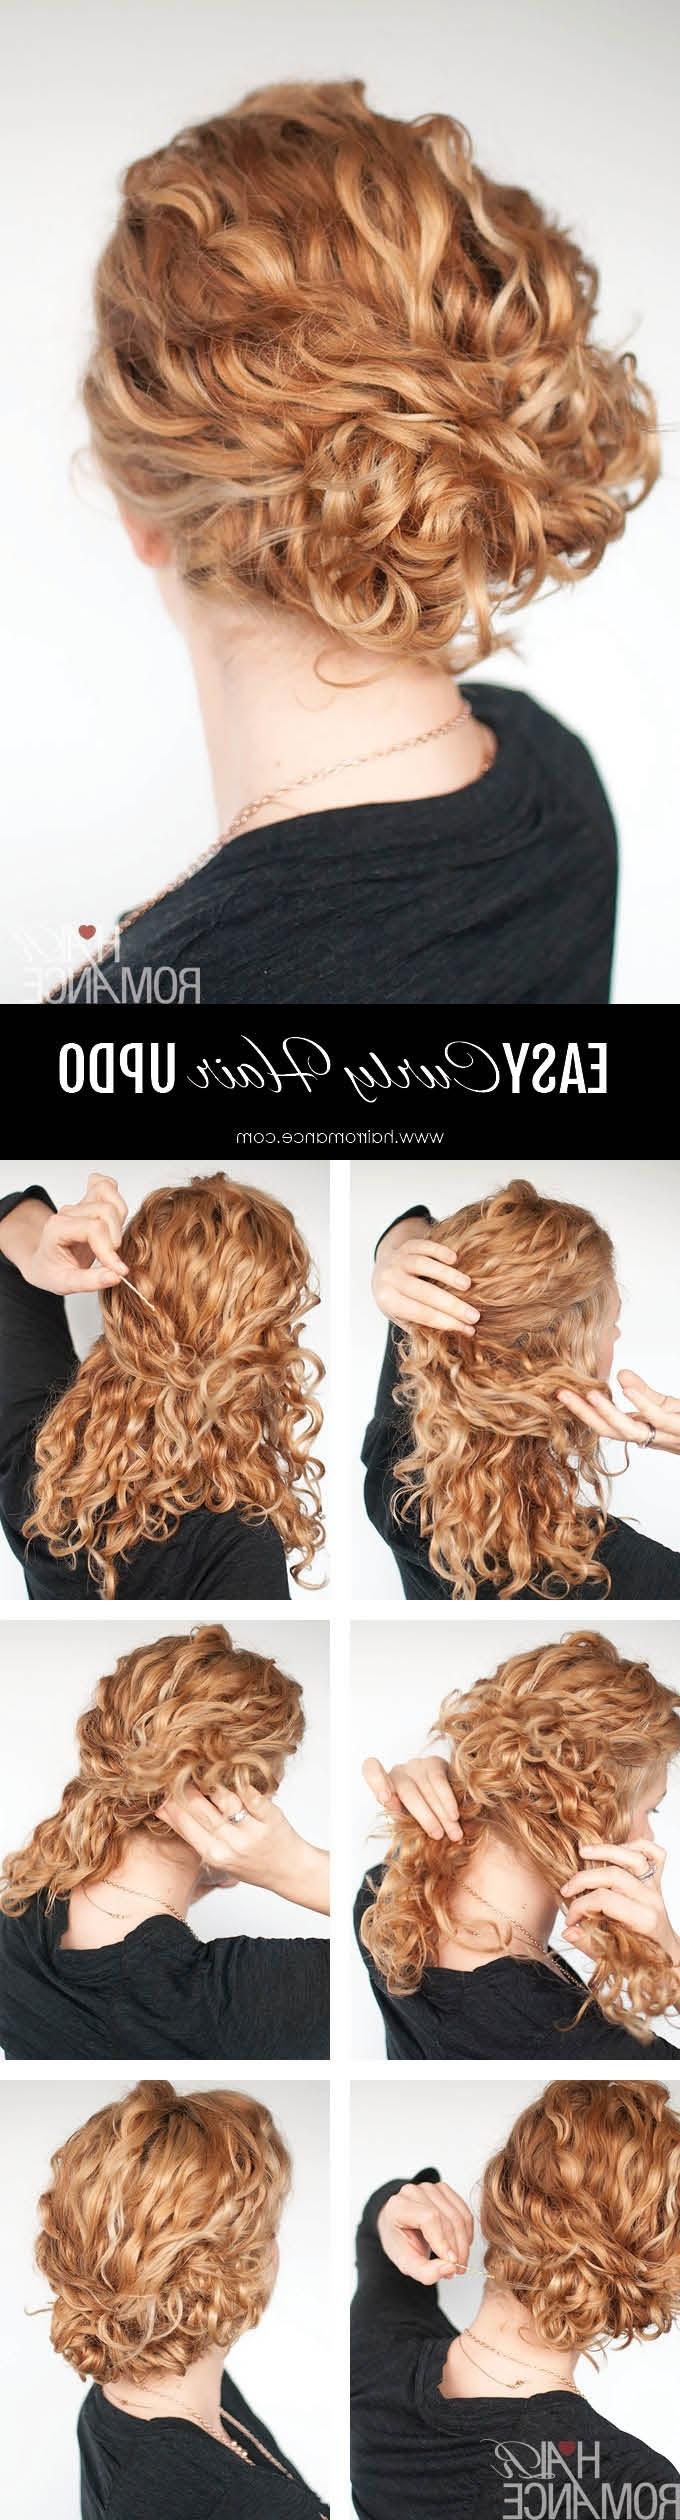 Super Easy Updo Hairstyle Tutorial For Curly Hair – Hair Romance Inside Easy Updos For Wavy Hair (View 15 of 15)